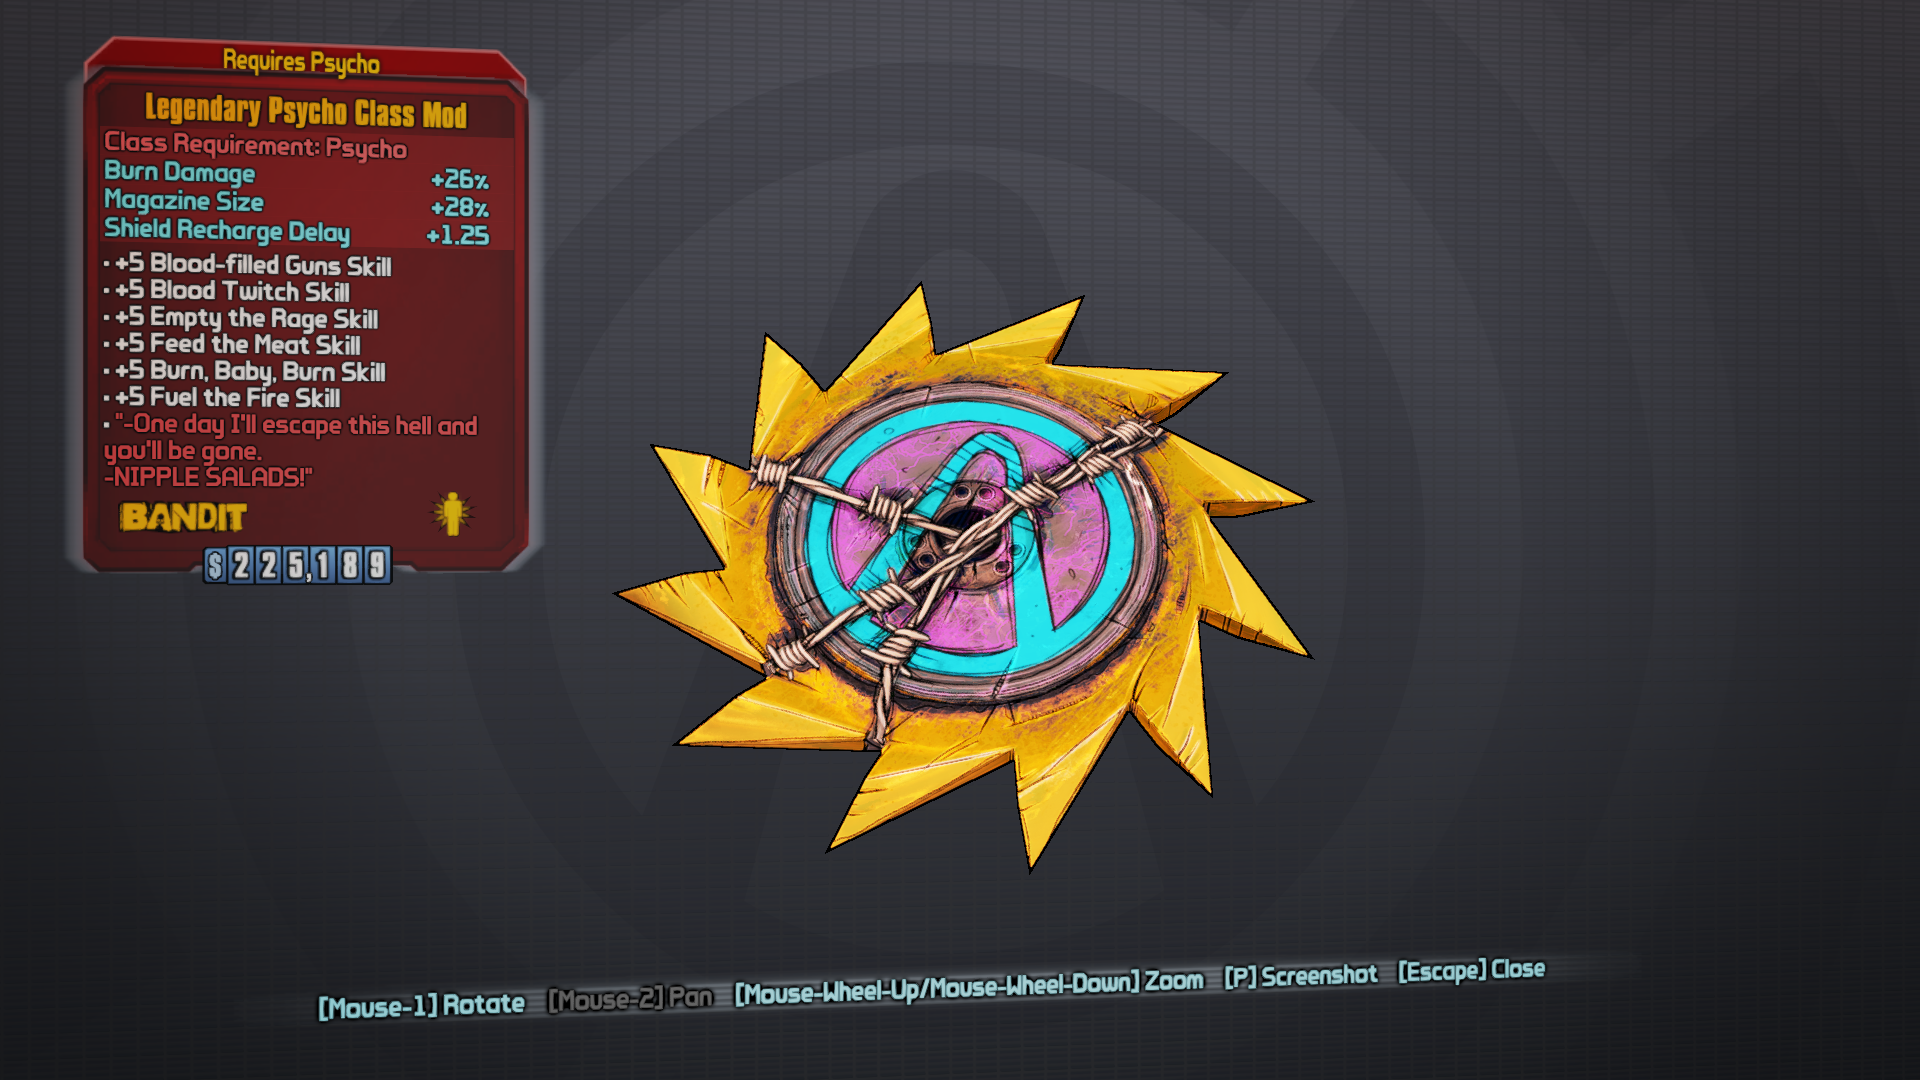 bl2 legendary sickle